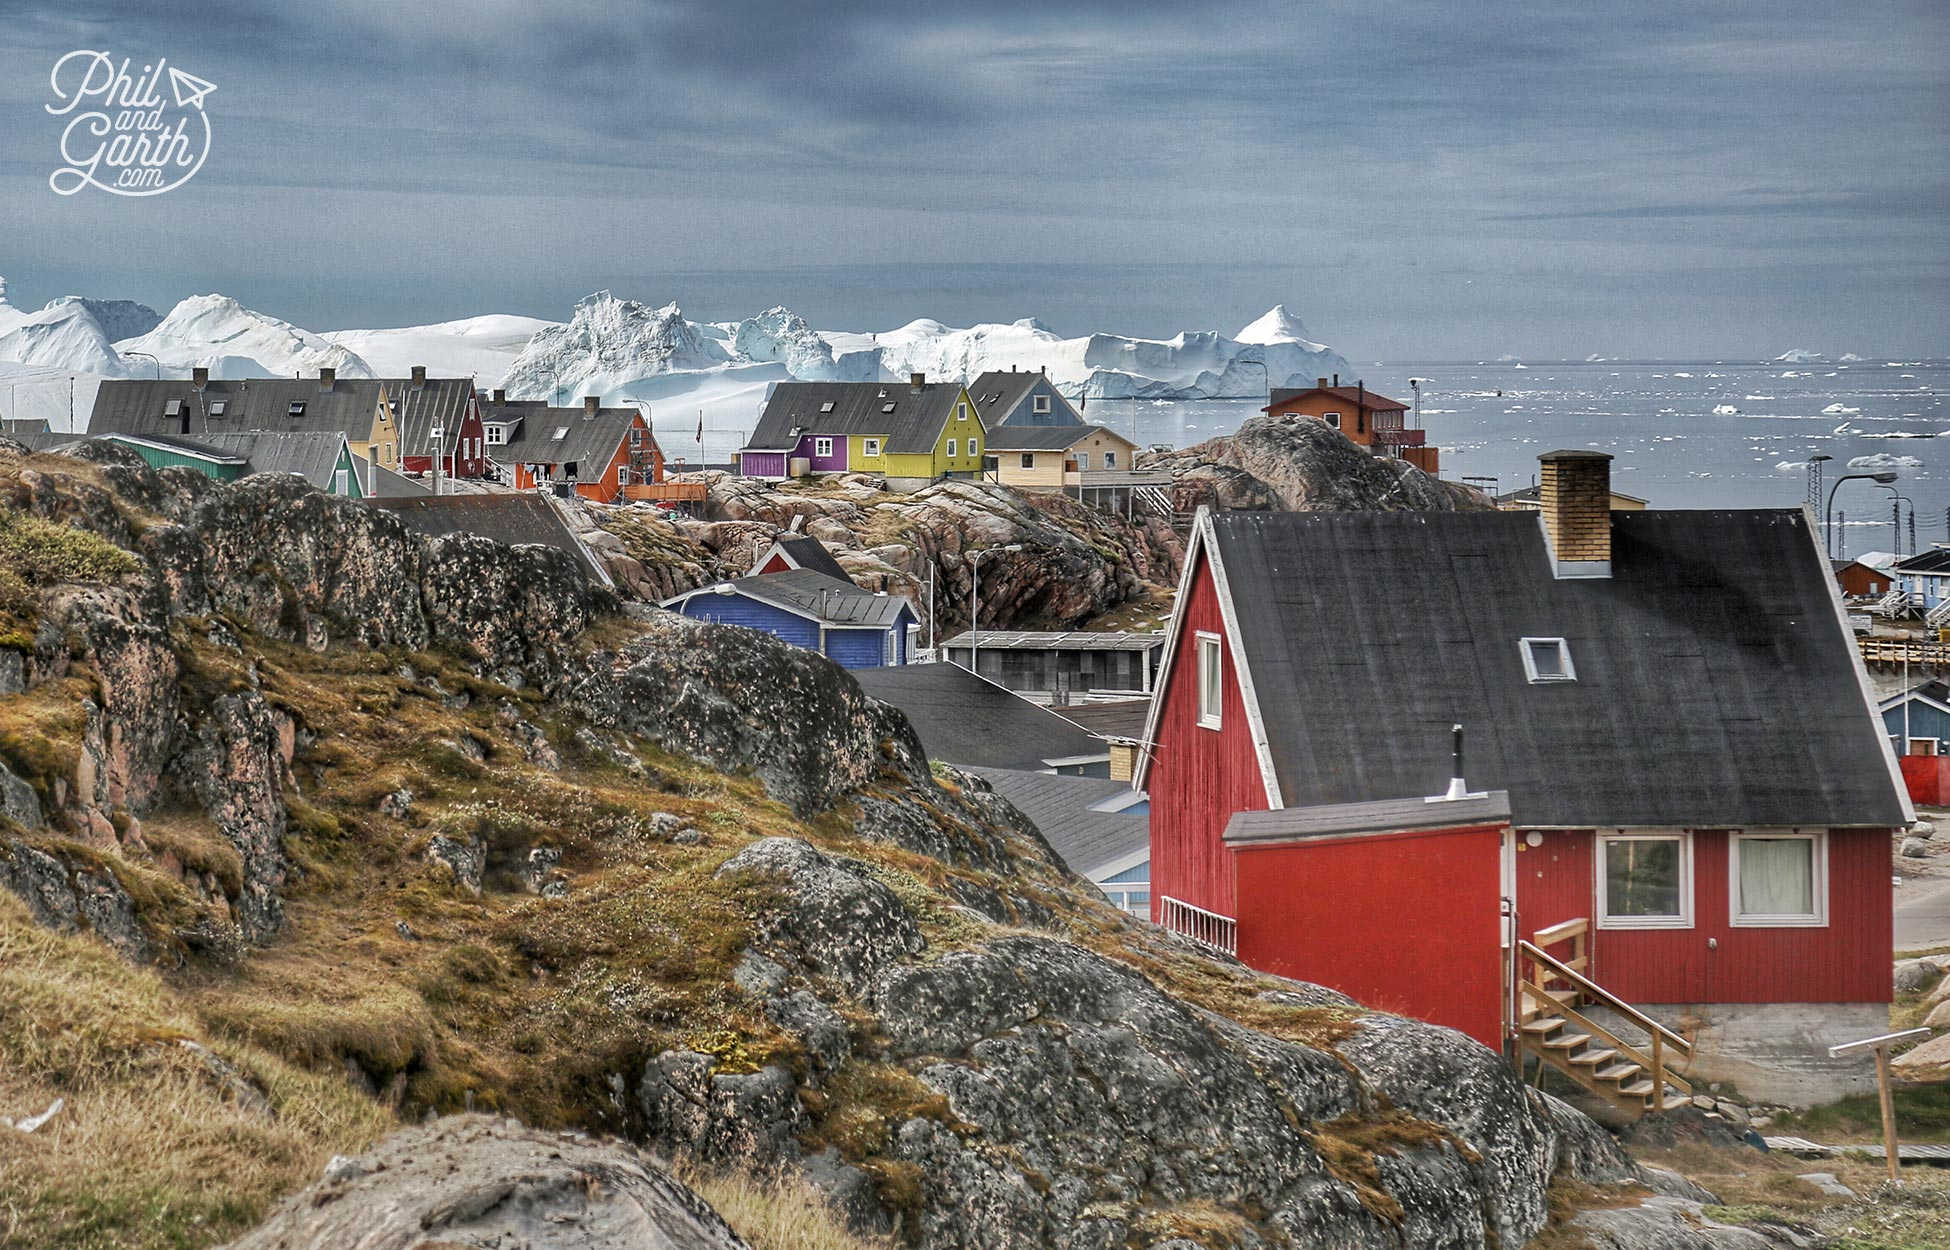 Ilulissat homes and stormy clouds over disko bay